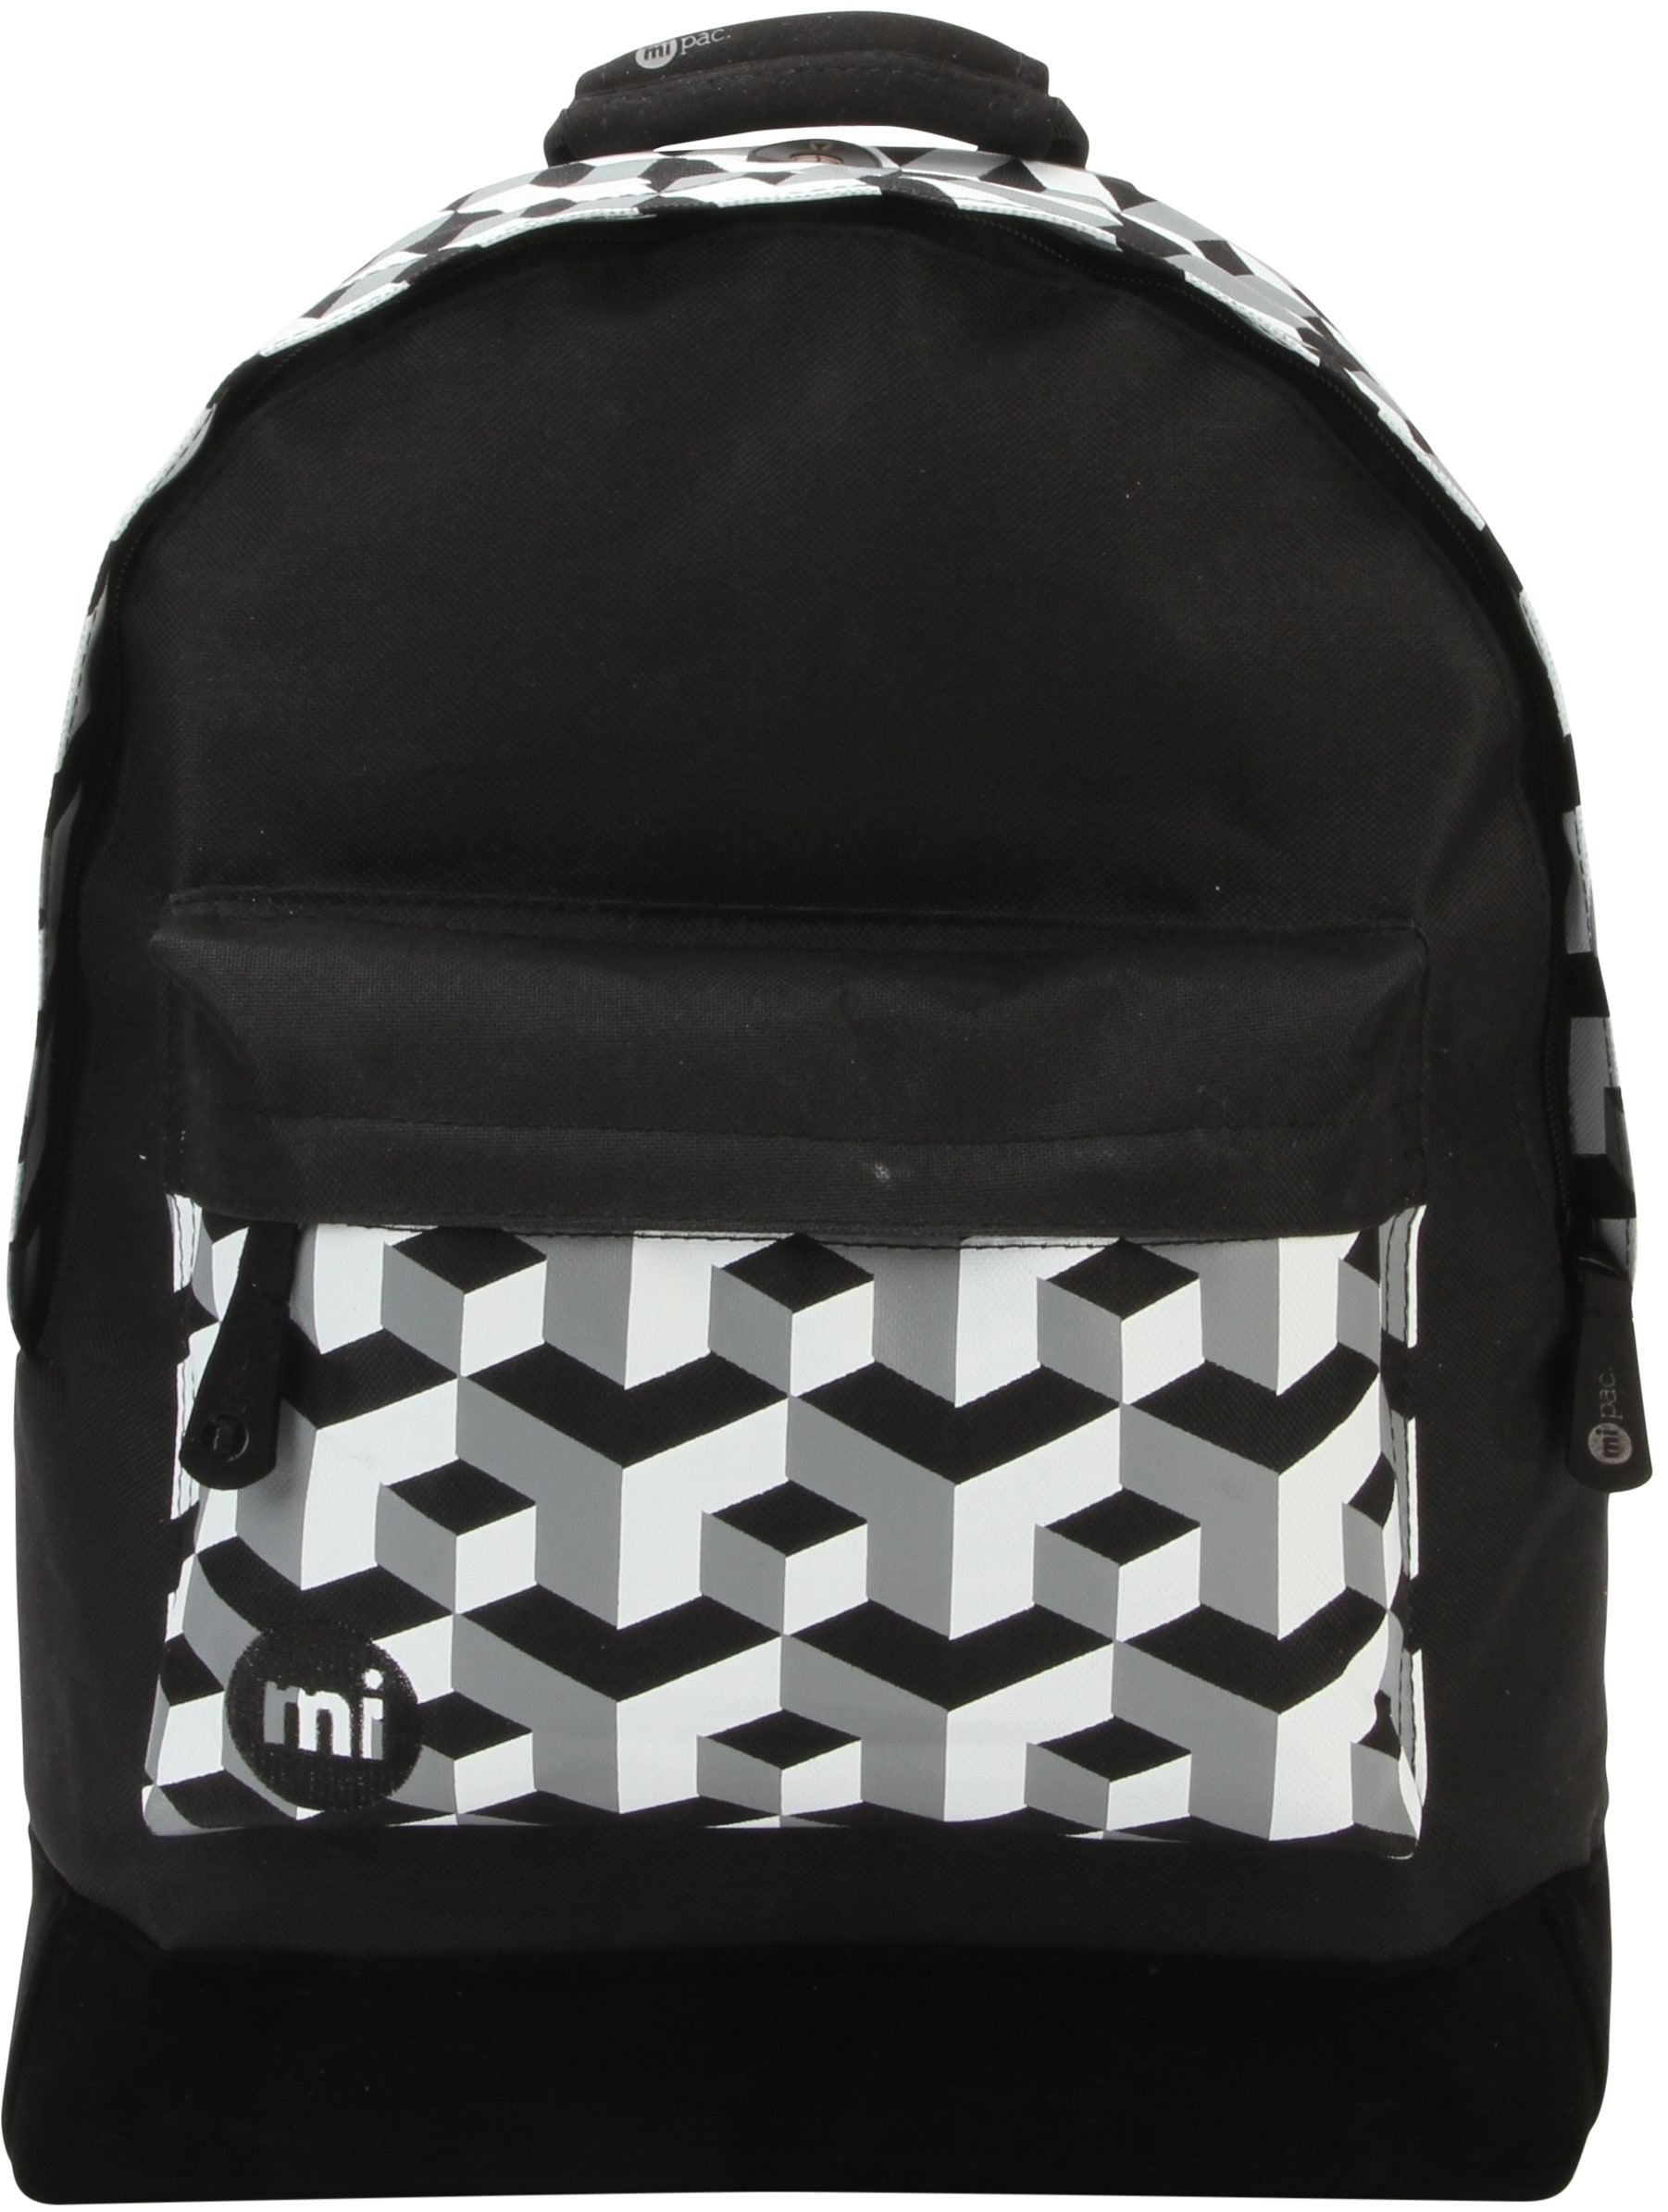 MiPac CubicT Backpack  Black